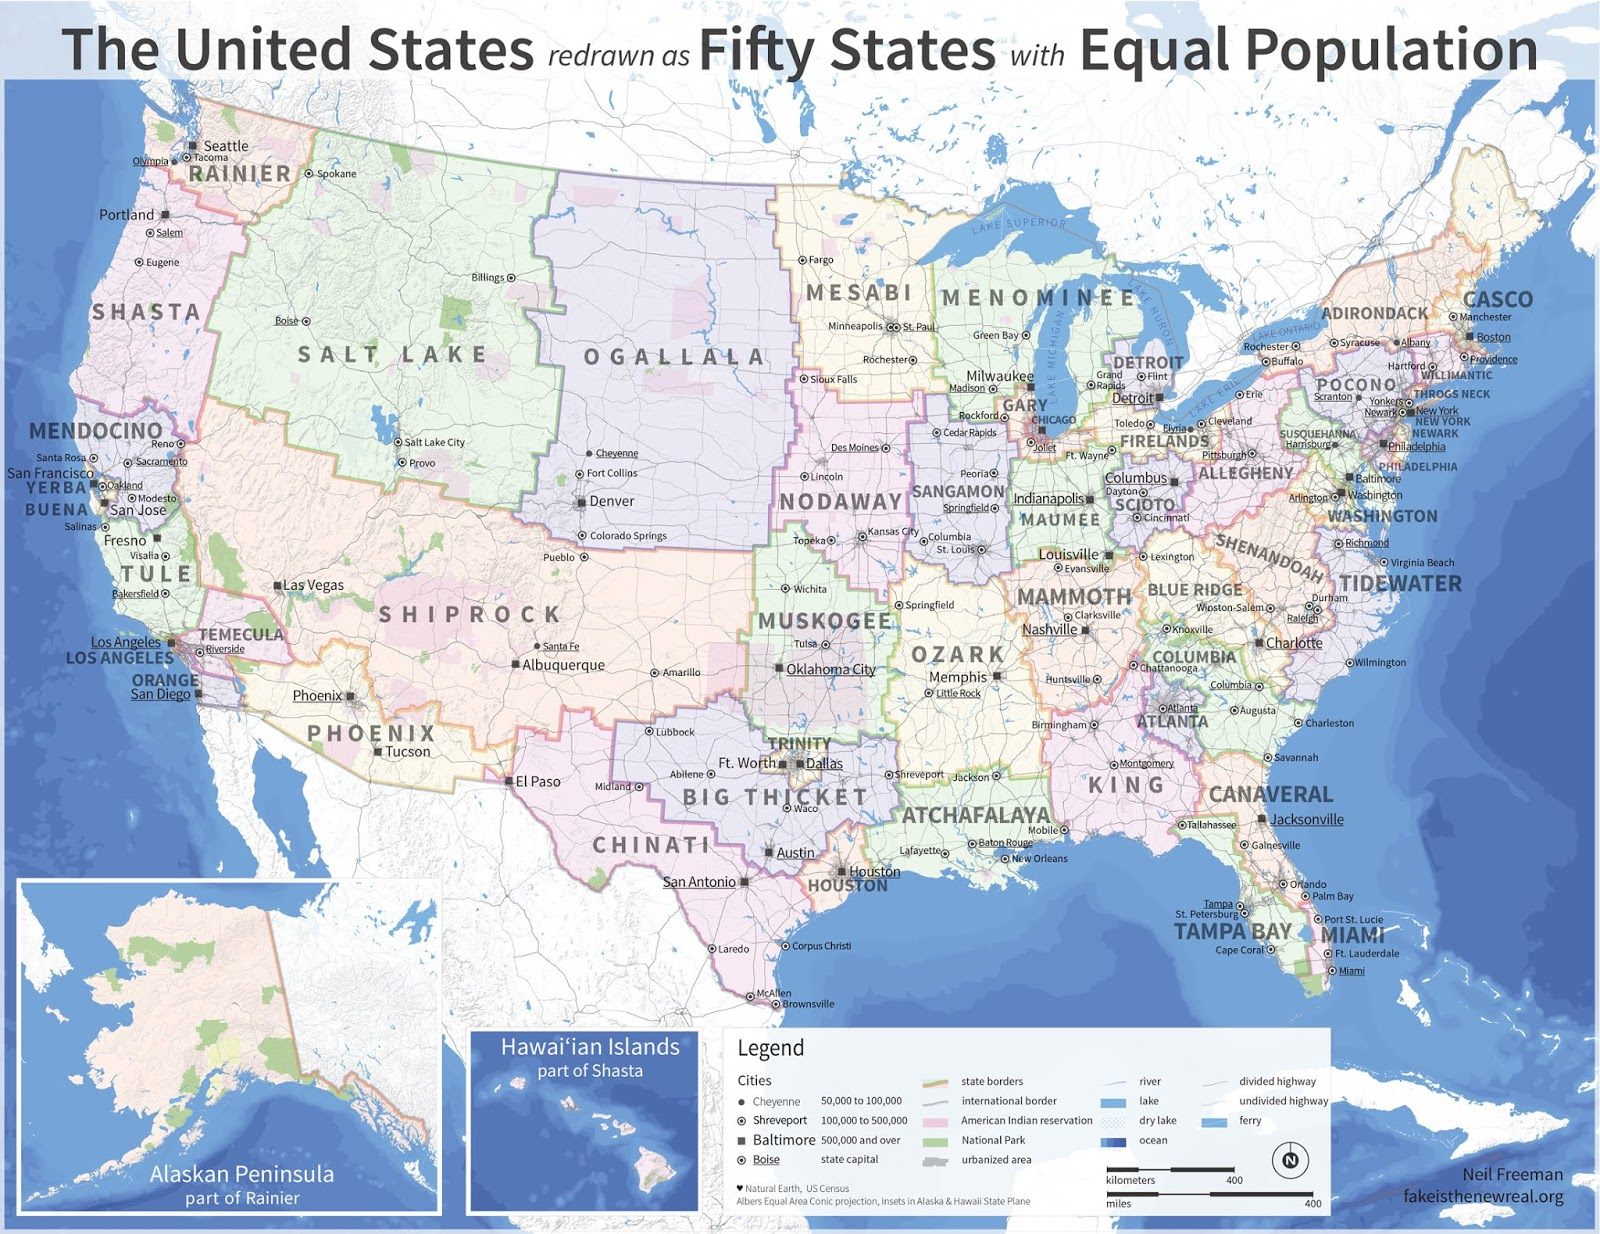 electoral college reform fifty states with equal population by neil freeman fake is the new real